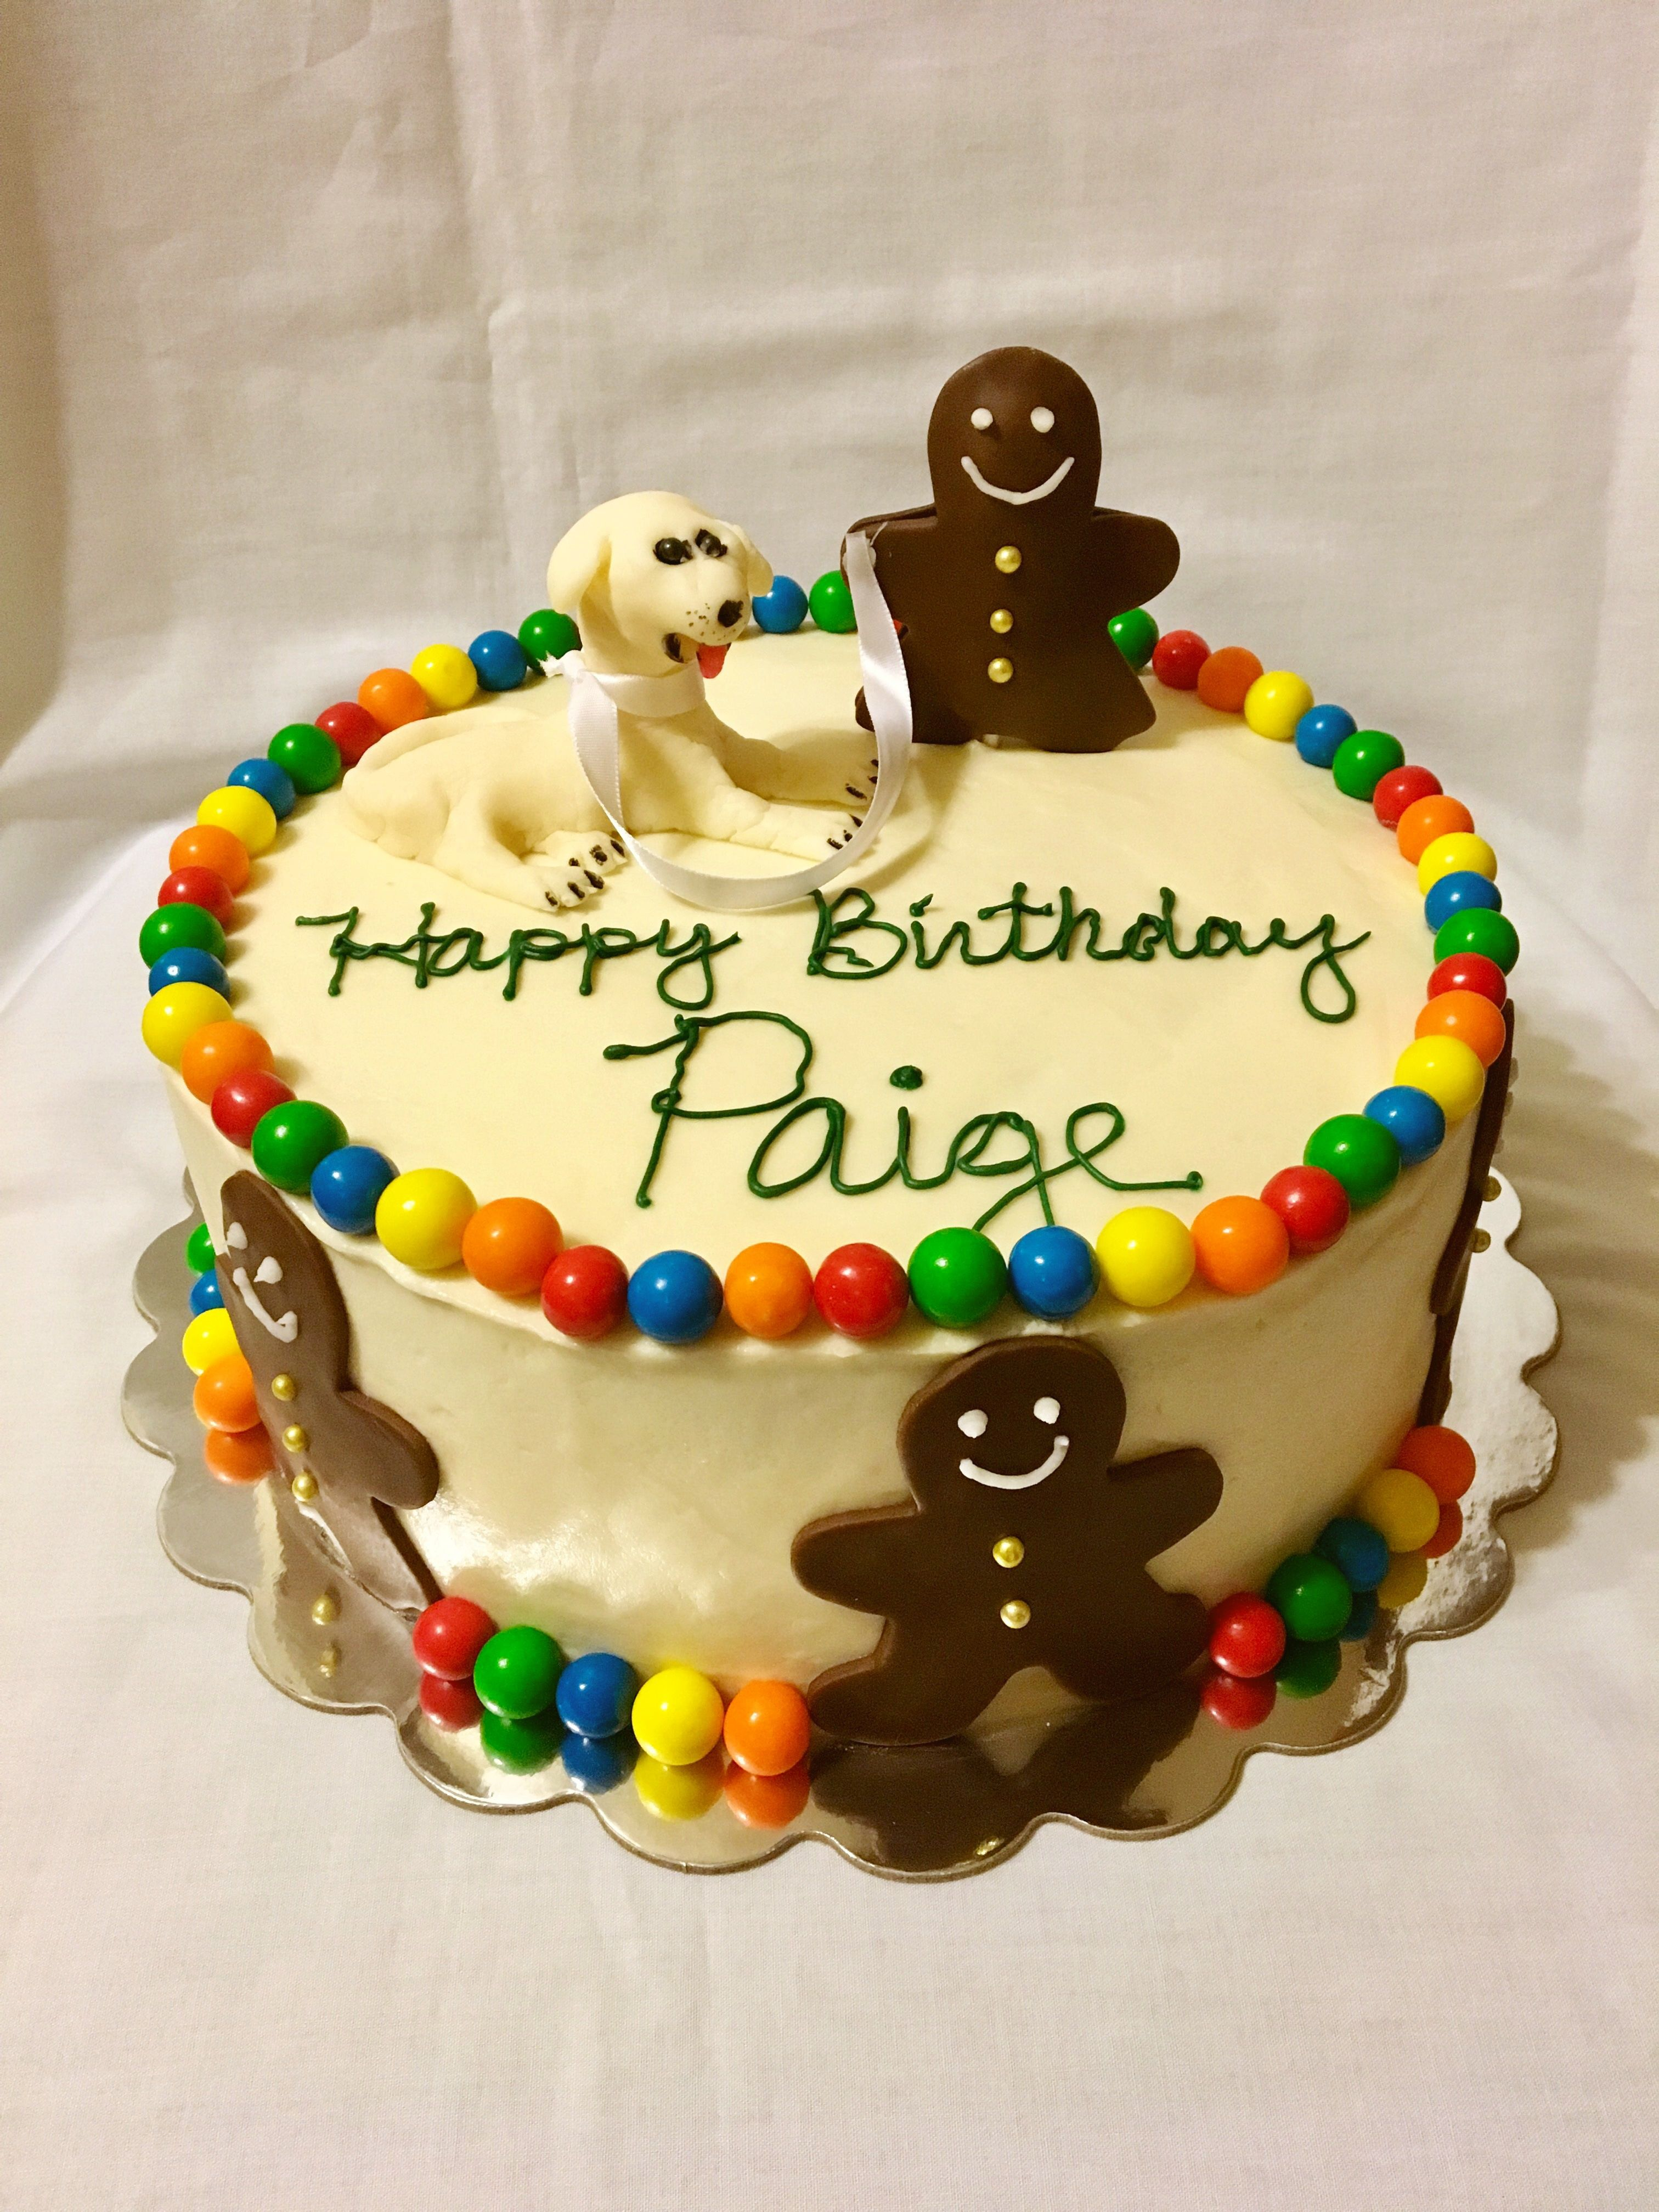 Gingerbread birthday cake Carrot cake with cream cheese frosting